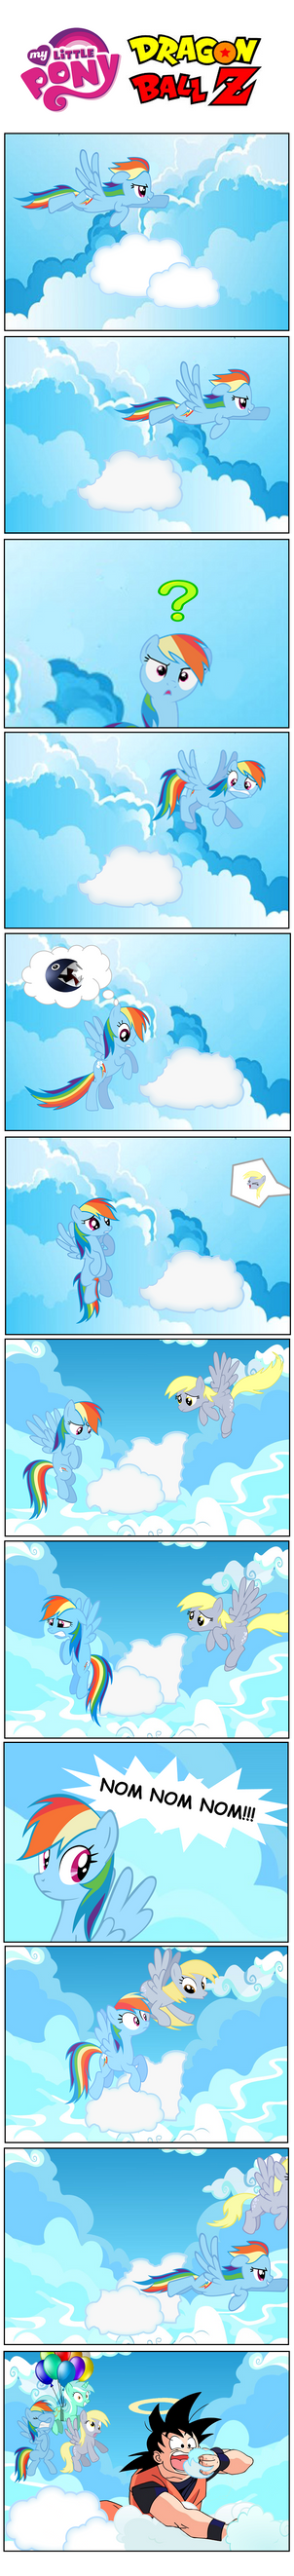 A mystery in the clouds by renacer87